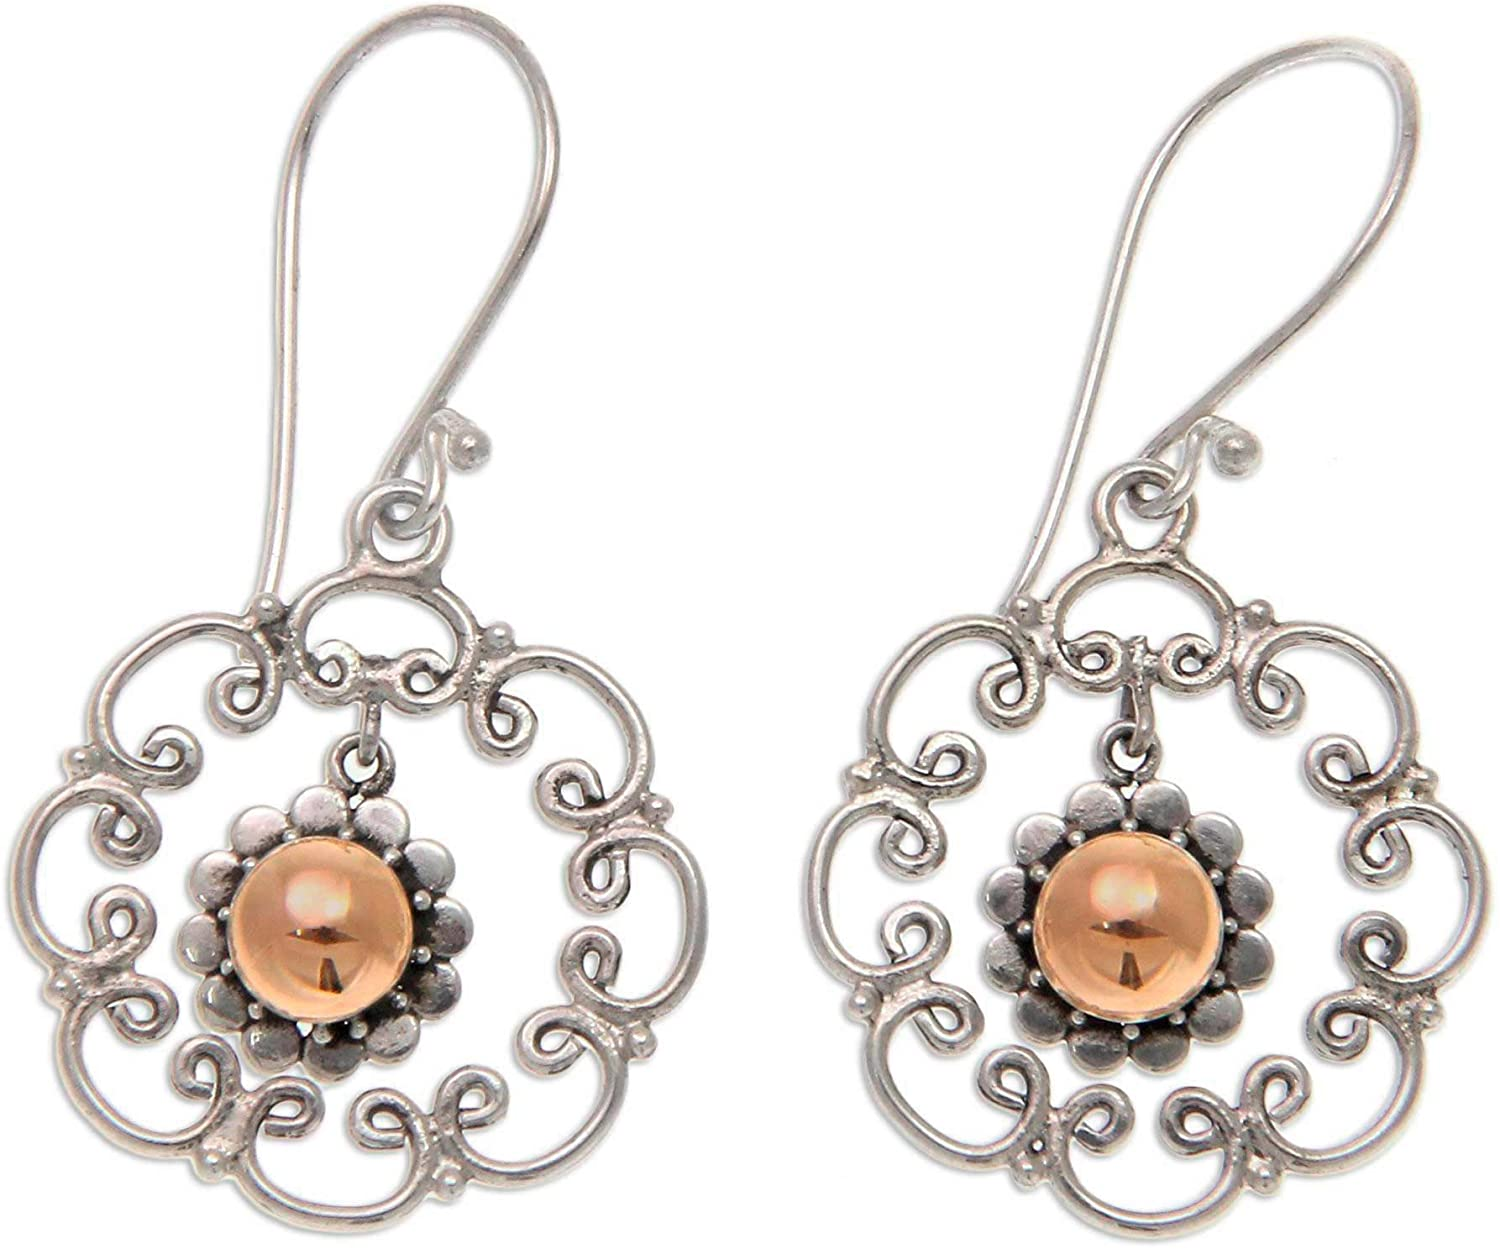 NOVICA .925 Sterling Silver Dangle Earrings with Yellow Gold Plated Accents, Delightful Denpasar